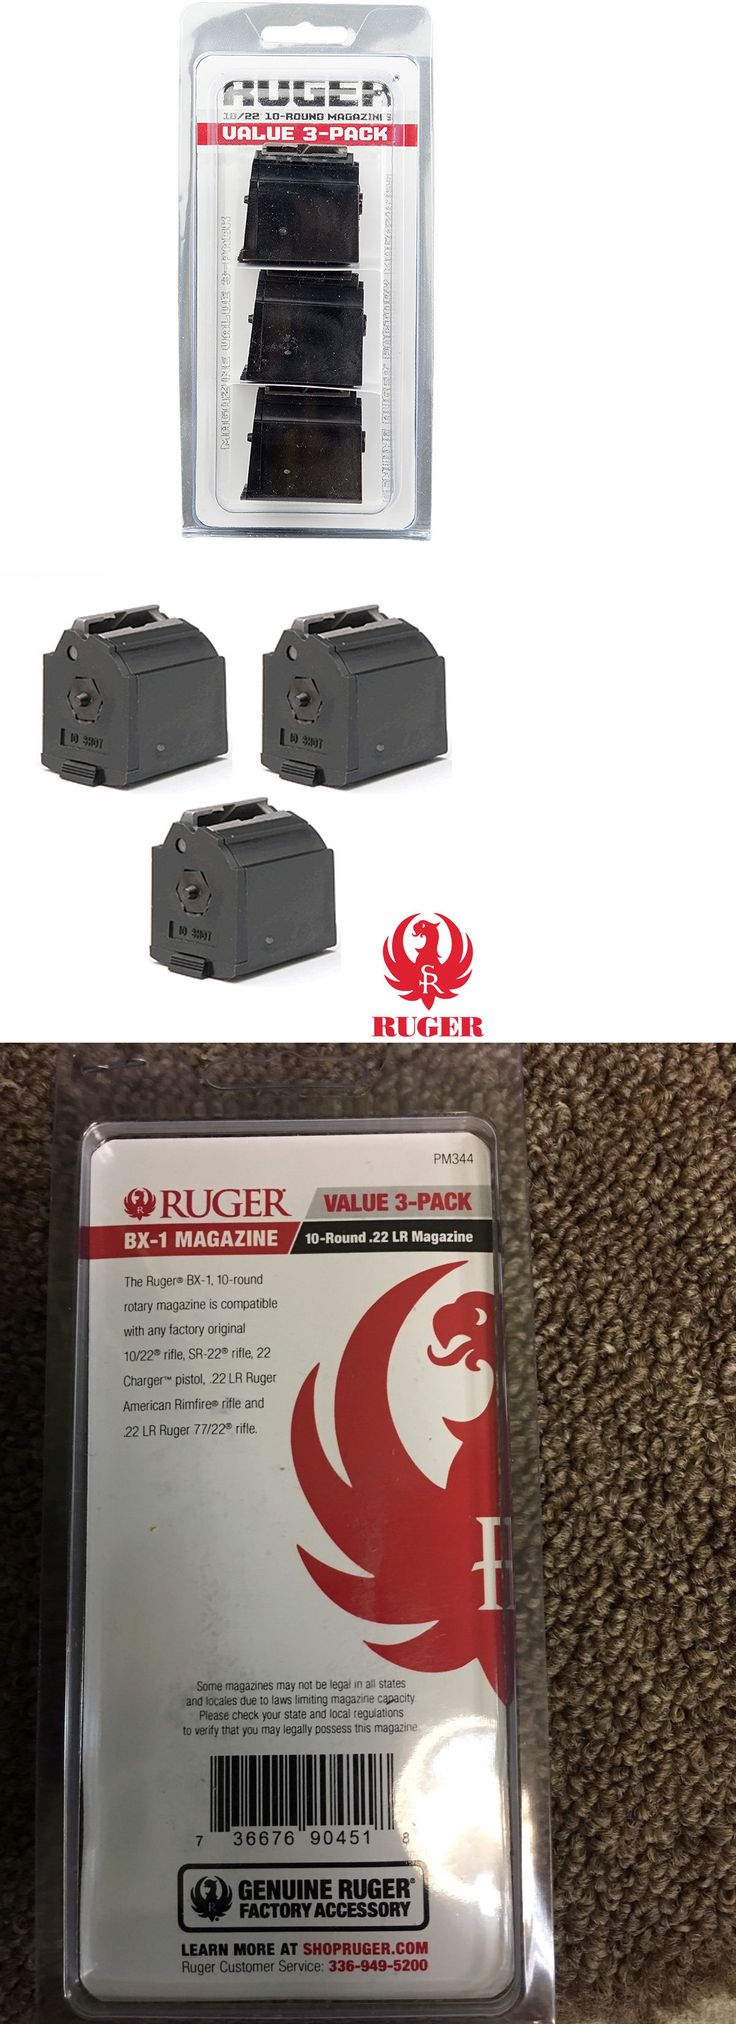 Magazines 177879: 3 Pack Ruger 10 22 Bx-1 Magazine 10-Round 22-Lr Value Genuine Oem Clip 90451 New -> BUY IT NOW ONLY: $32.99 on eBay!